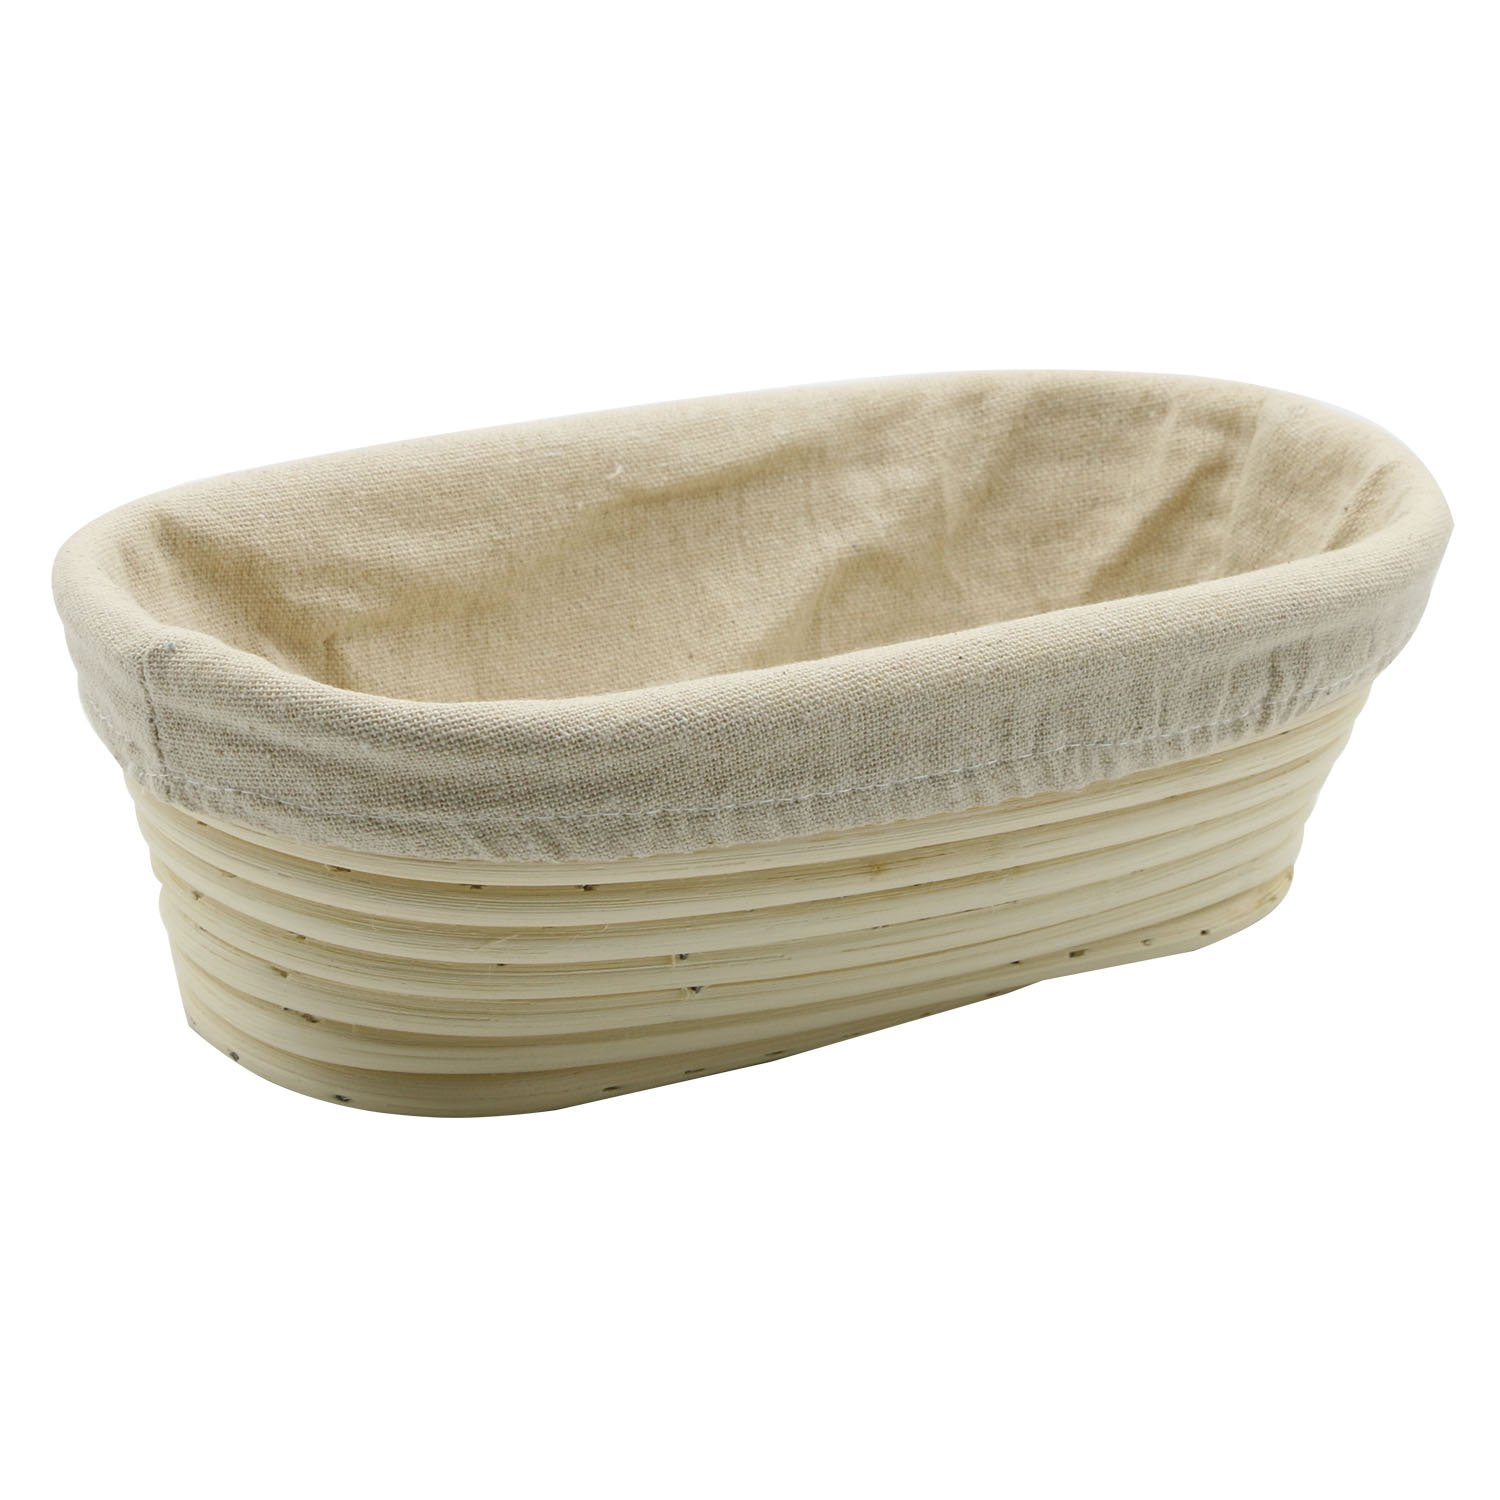 Stormshopping 9.8 inch Oval Long Banneton Brotform Bread Dough Proofing Rising Rattan Basket & Liner